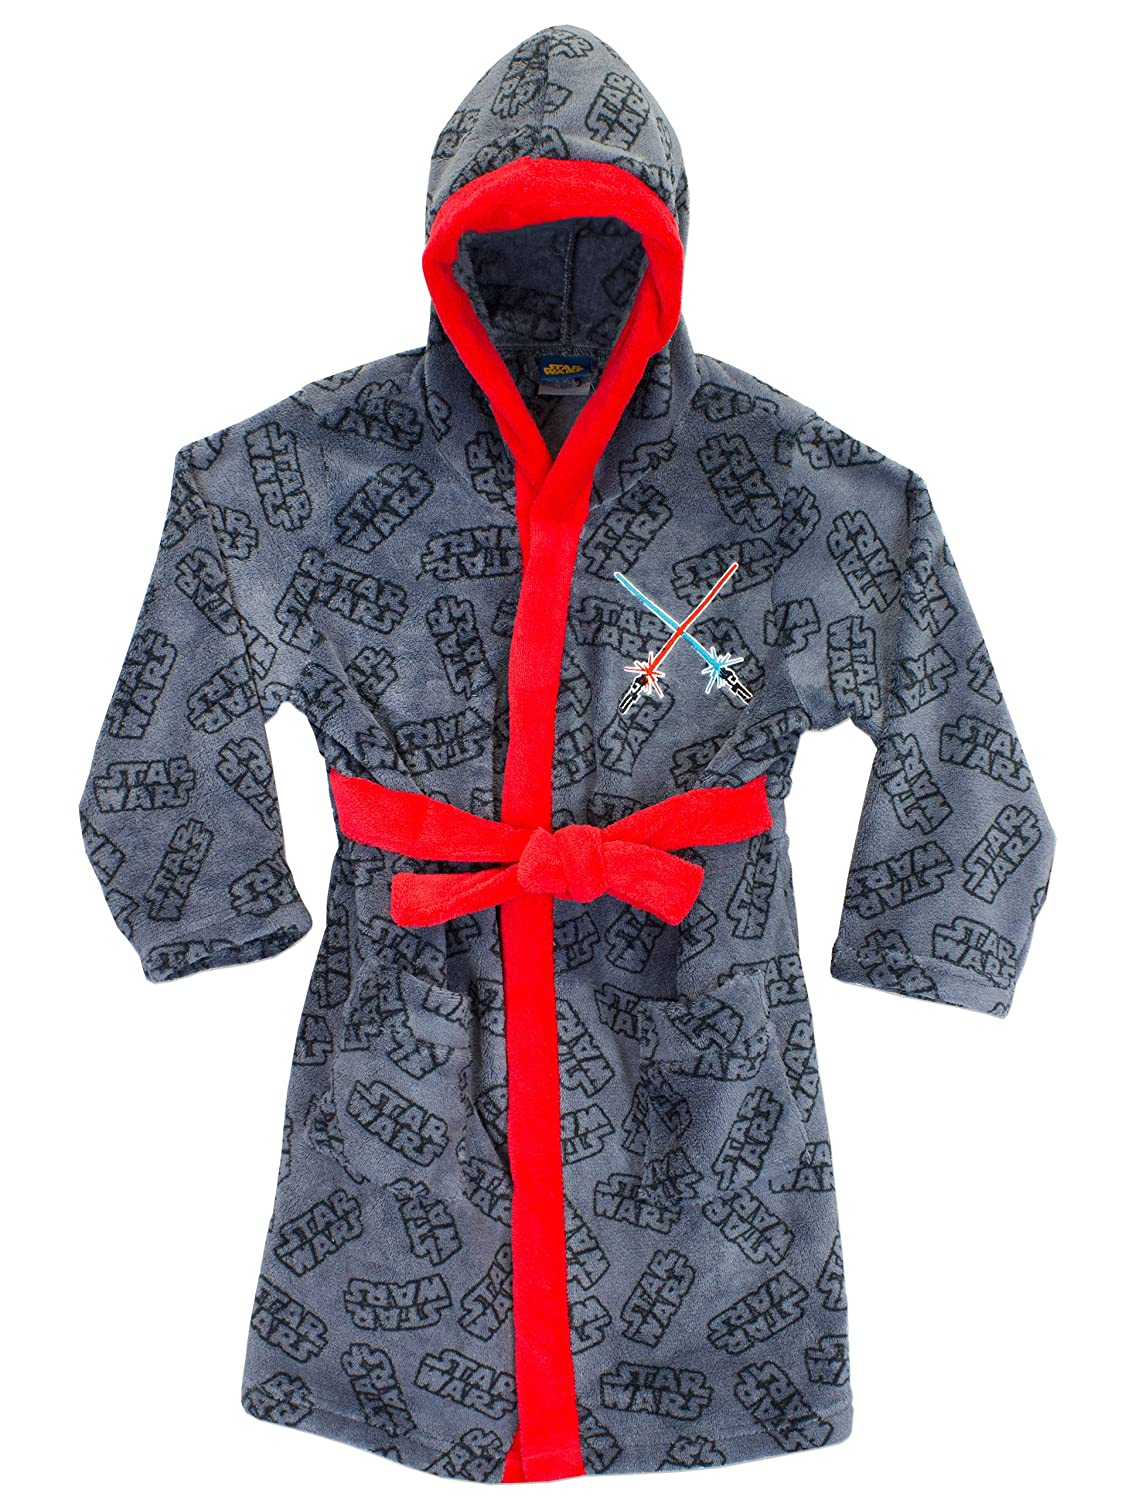 Hooded Star Wars bathrobe for boys with all over logo pattern and lightsabers